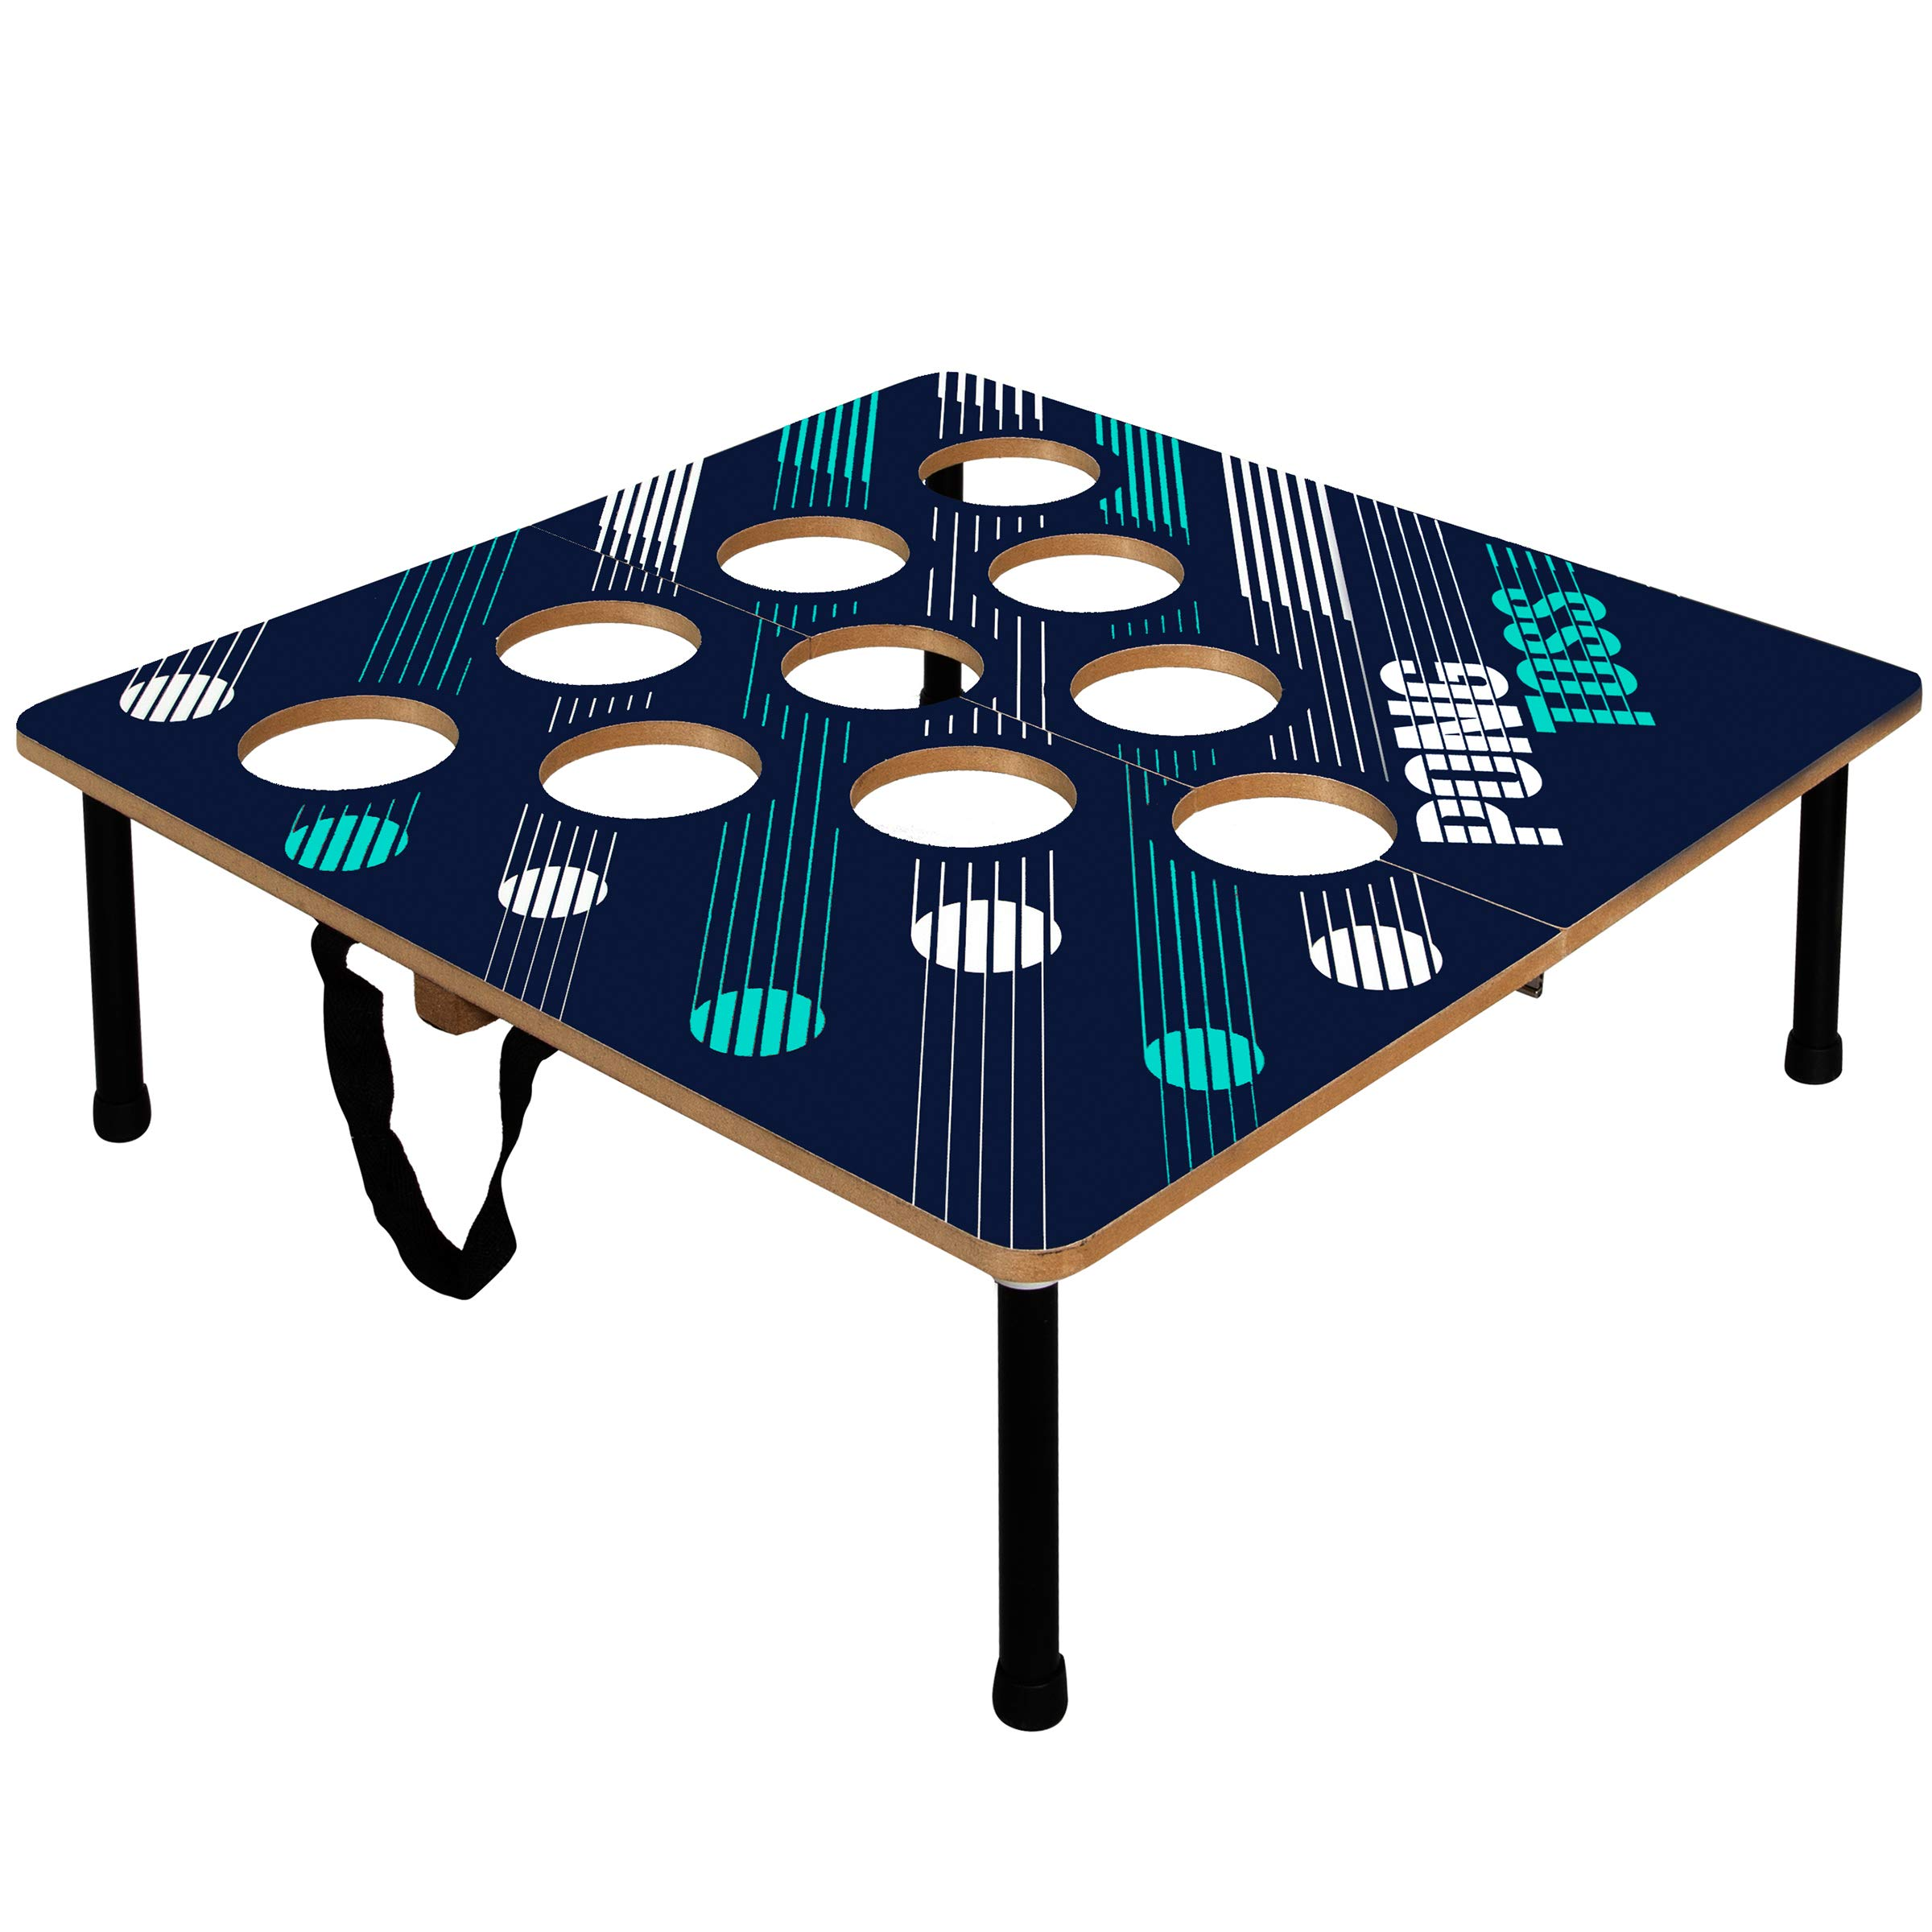 Black Series Portable Beer Pong Set with 2 Folding Tables and 6 Ping Pong Balls, Classic Drinking Game for Adults, Best Party Games, Collapsible for Easy Storage, Dorm Room Essentials, Indoor Outdoor by Black Series